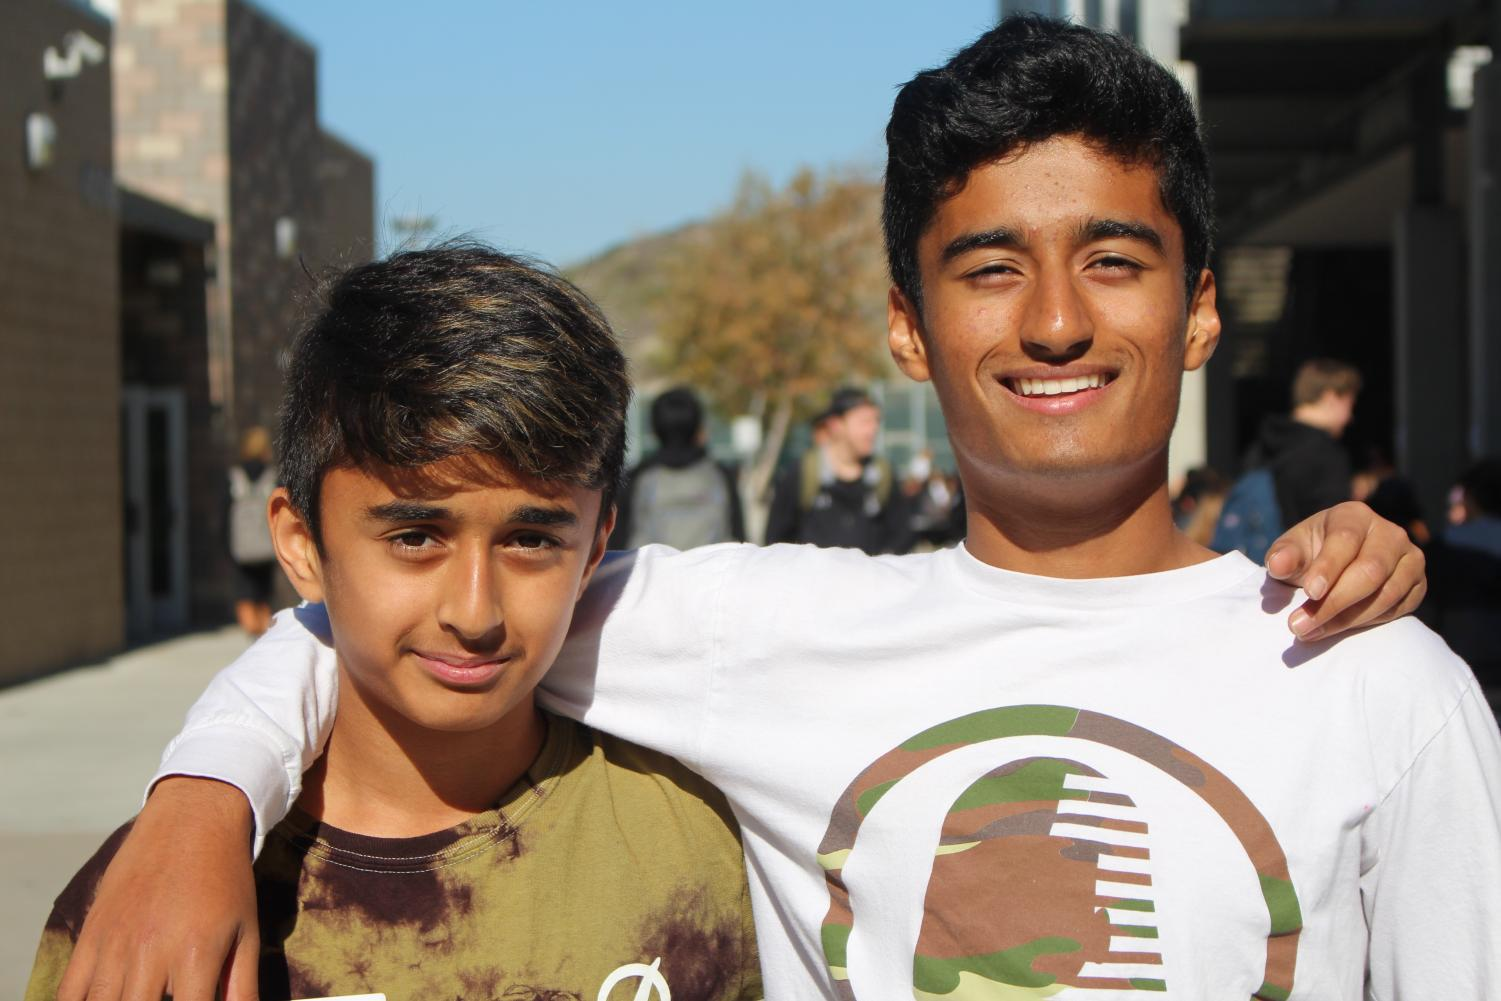 Eighth-grader+Ishan+Pandhare+got+an+opportunity+to+live+in+a+day+of+his+brother%2C+Senior+Aryan+Pandhare.+Eighth-graders+from+Aviara+Middle+School+ventured+to+Sage+Creek+pn+Dec.+12+to+shadow+students+for+a+glimpse+of+what+high+school+at+Sage+Creek+is+like.